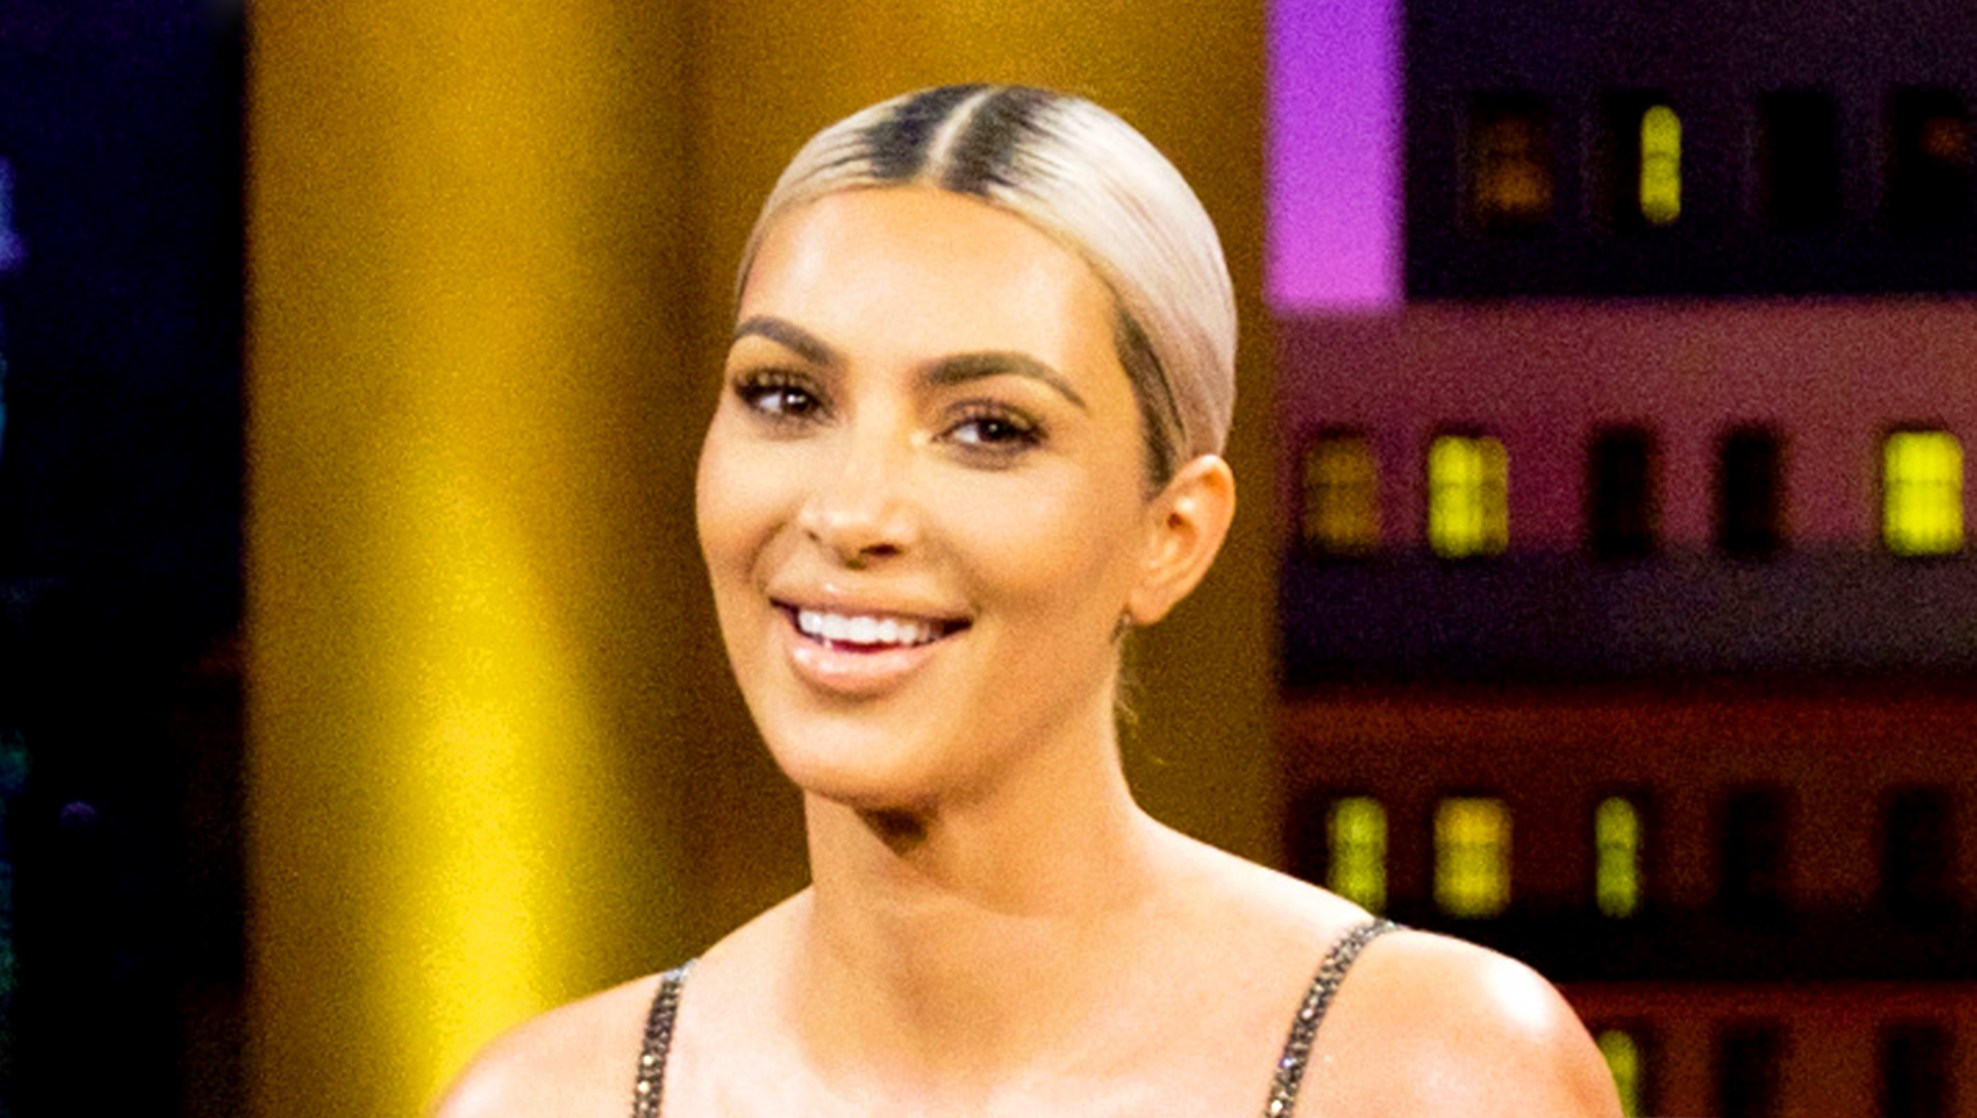 Kim Kardashian on 'The Late Late Show with James Corden'